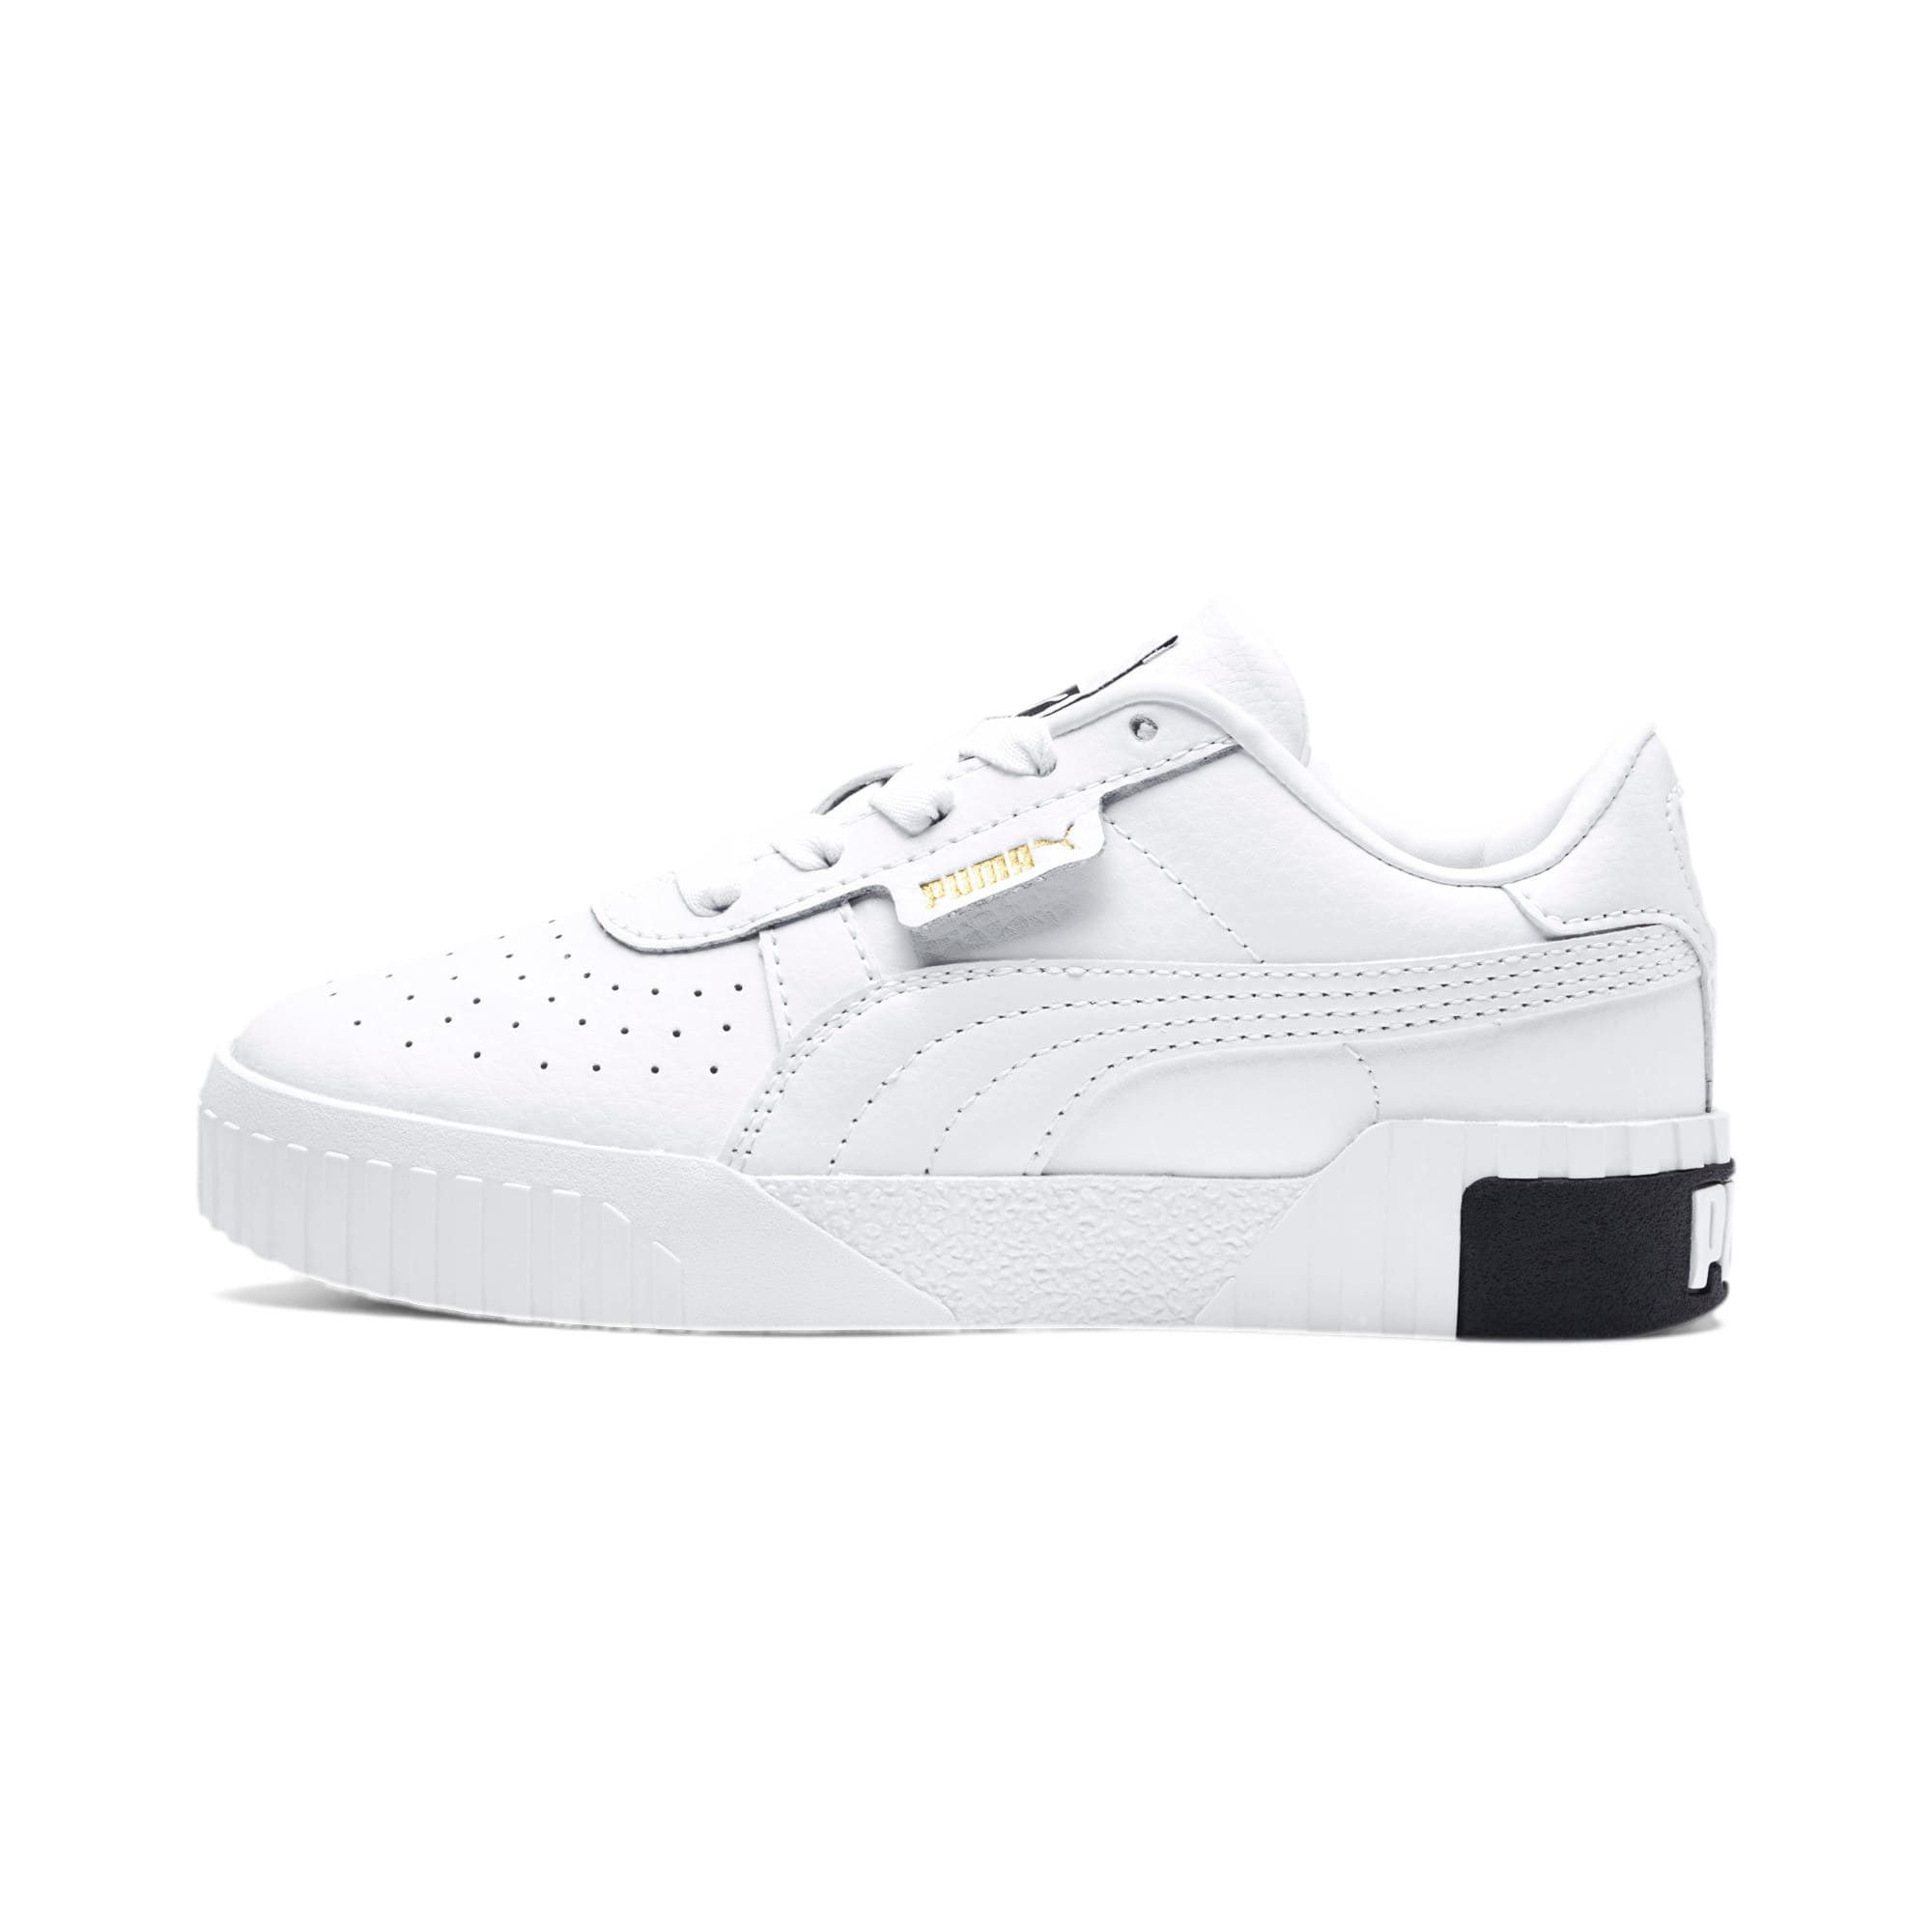 Thumbnail 1 of Cali Little Kids' Shoes, Puma White-Puma Black, medium